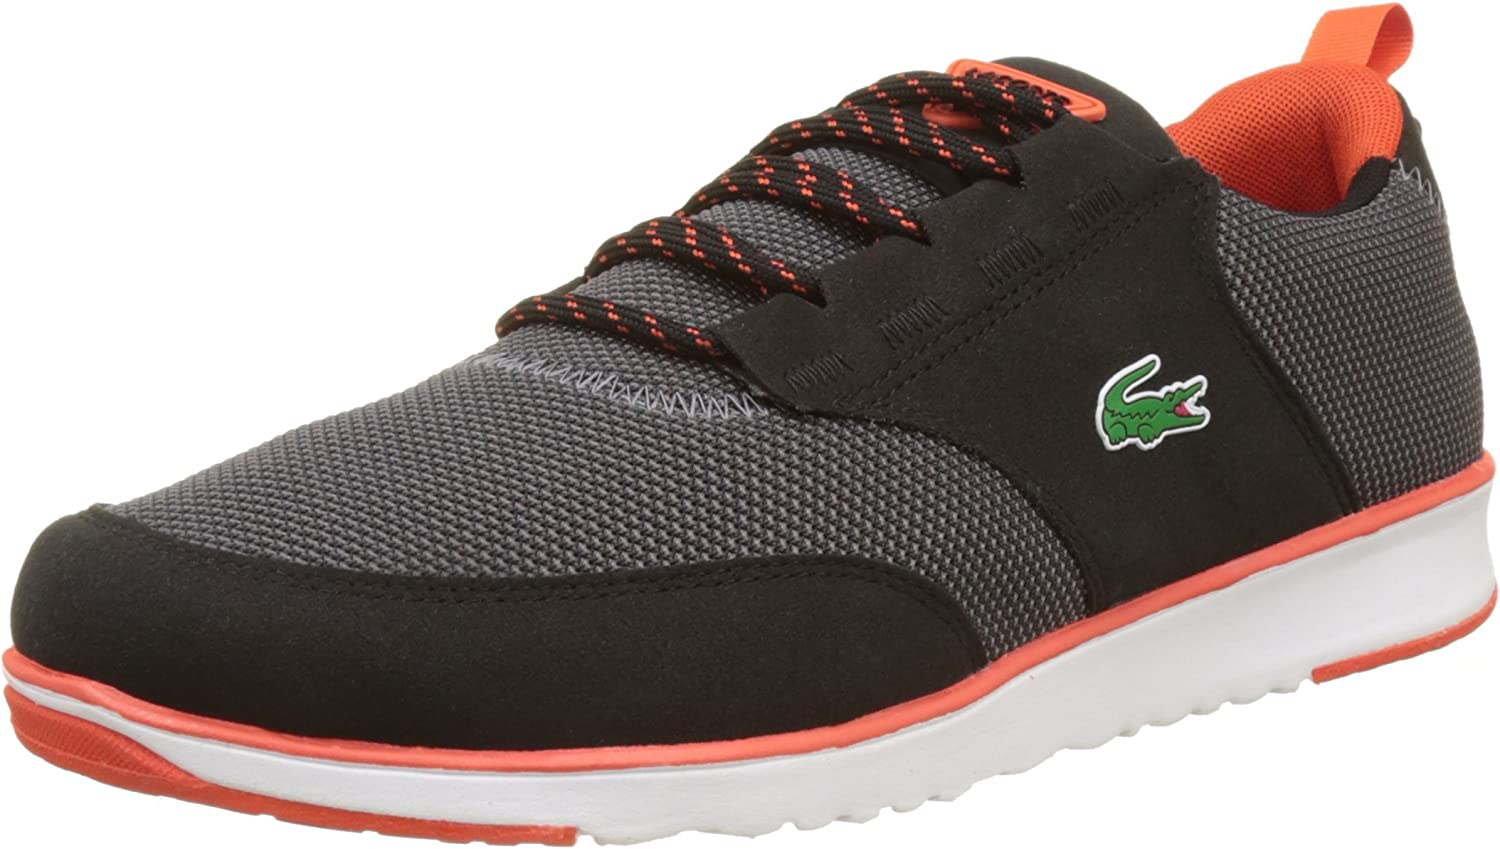 Lacoste Mans L.Ight 317 Bass Trainers